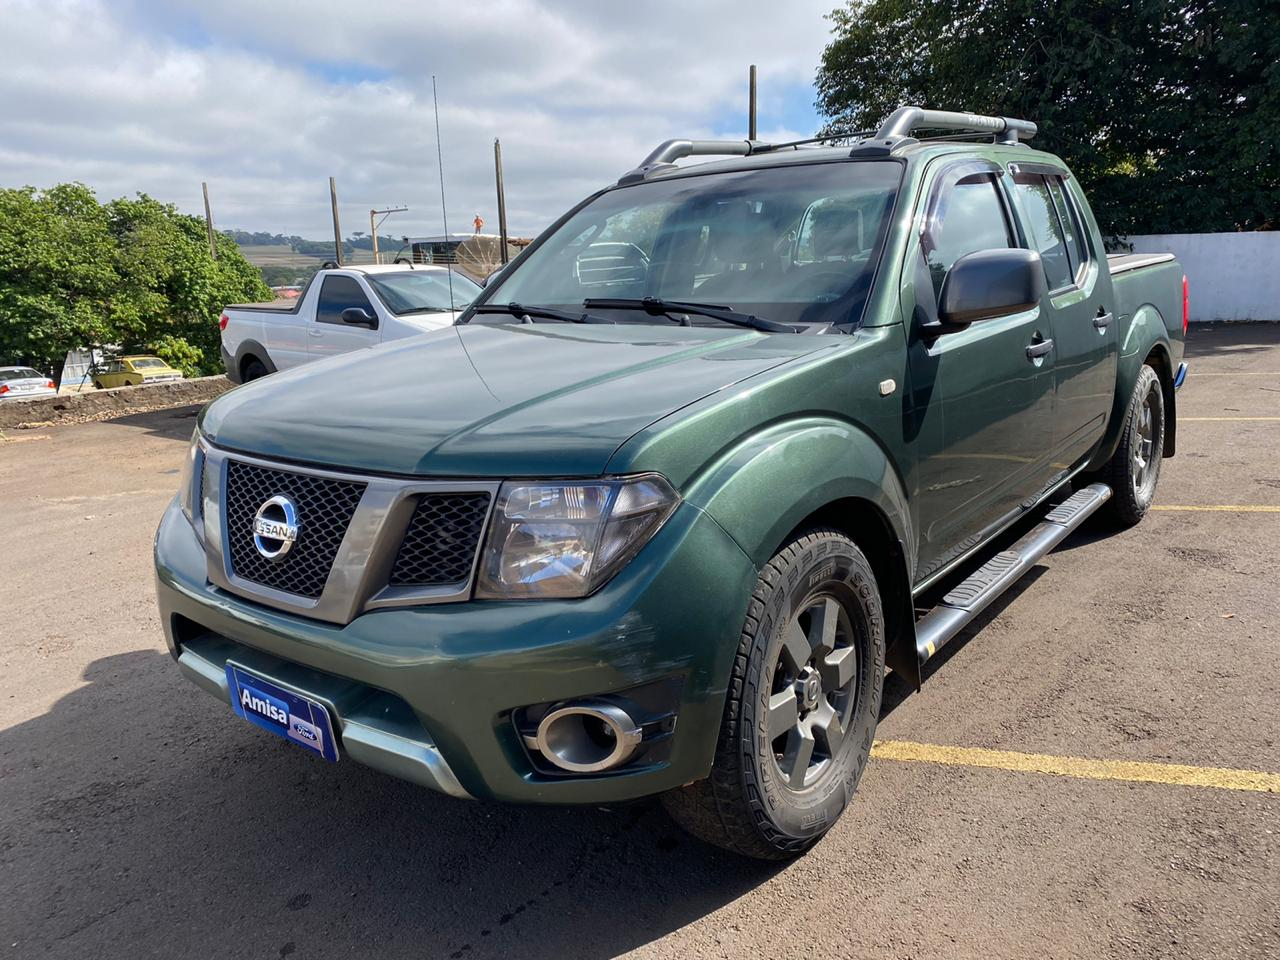 FRONTIER SV ATTACK